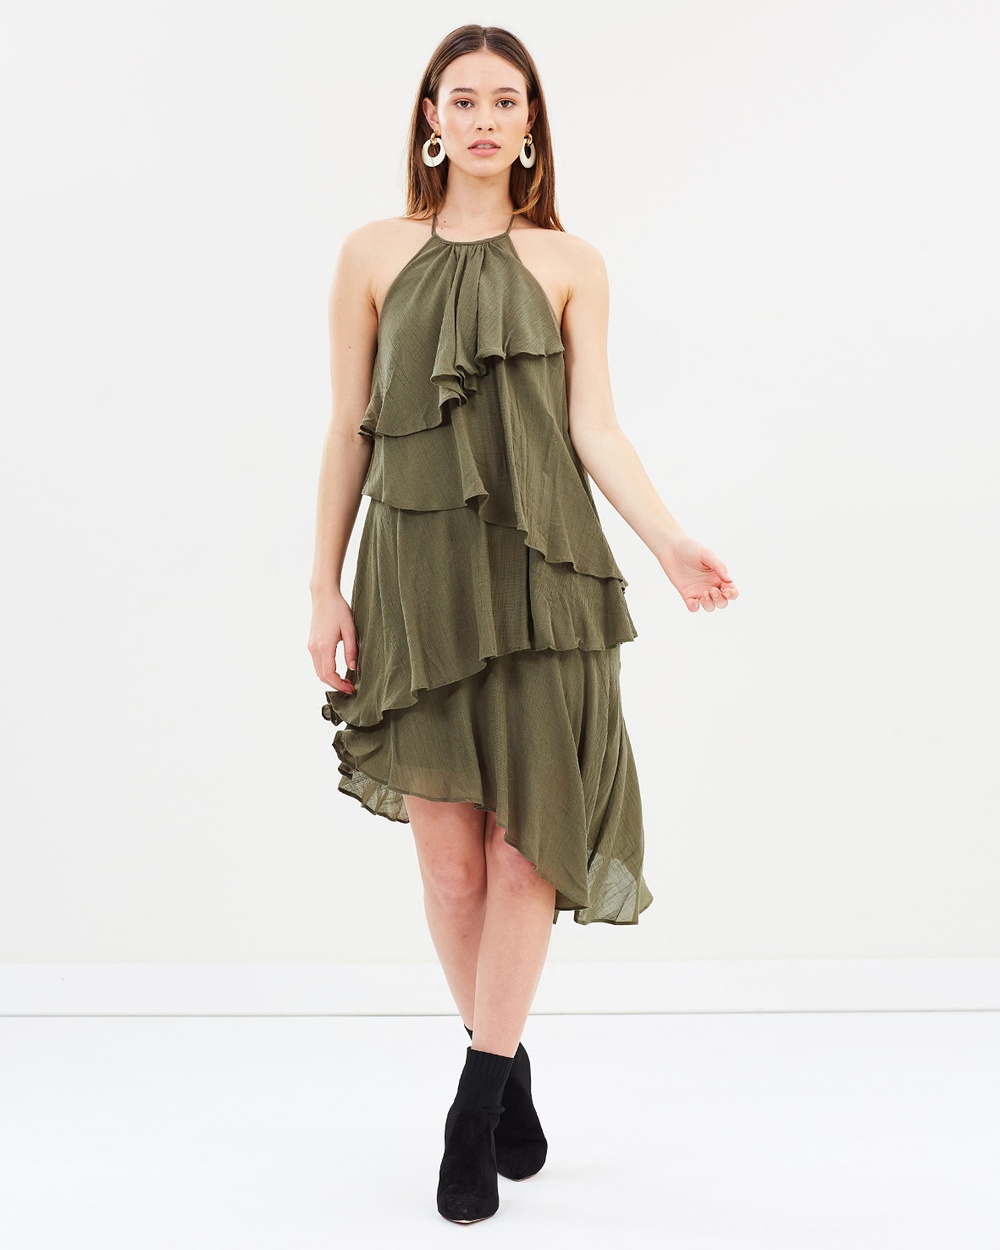 Vero Moda Felice Sleeveless Low Back Dress Dresses Ivy Green Felice Sleeveless Low Back Dress